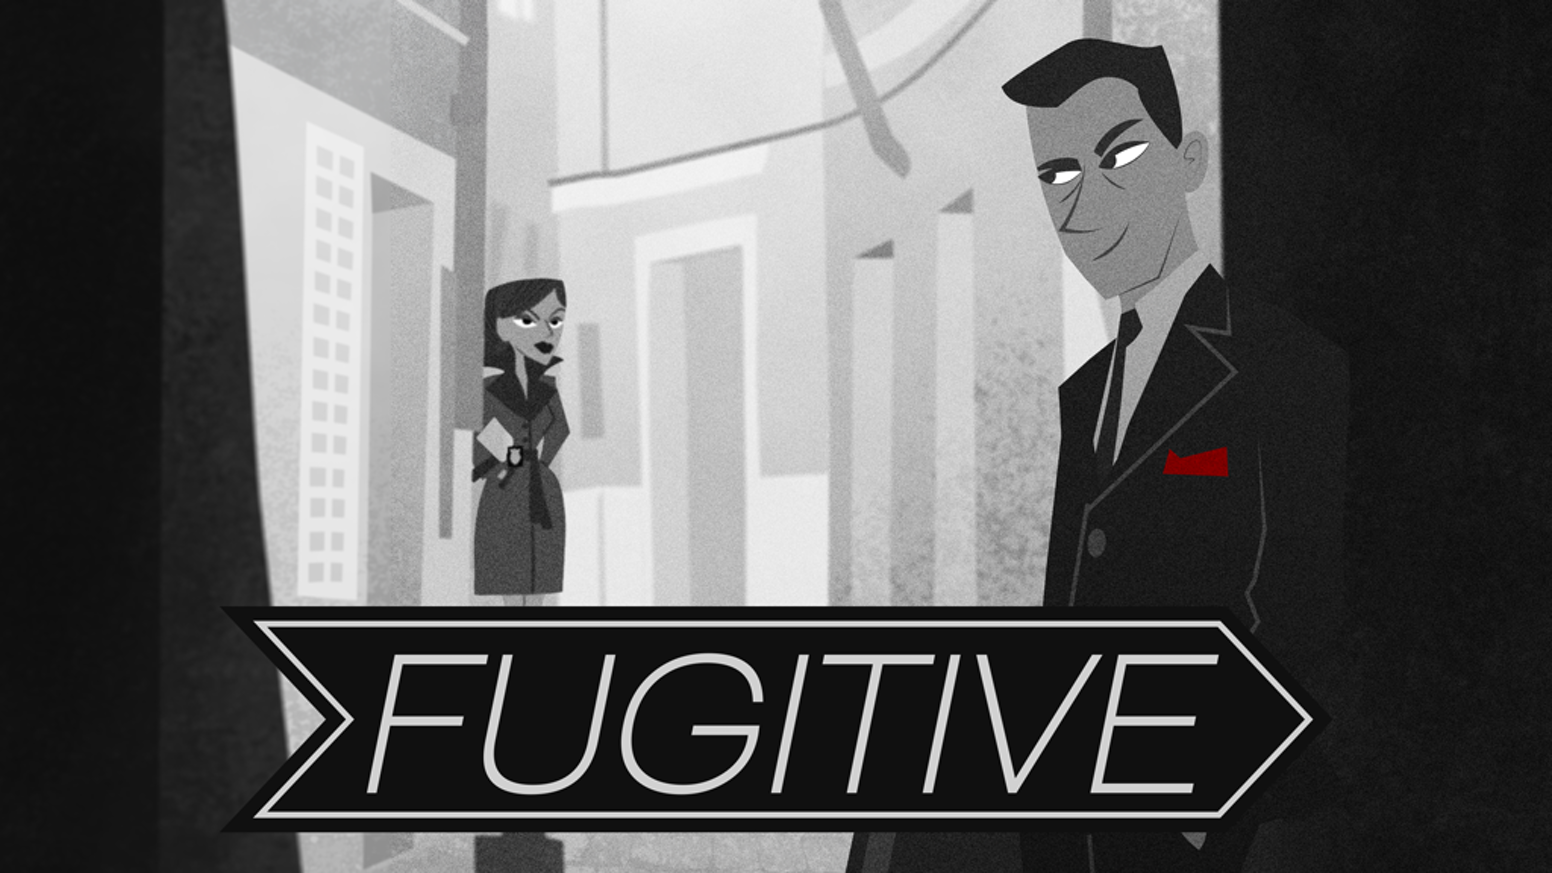 Fugitive - a tense two player deduction card game, full of close calls and great escapes - all packed into 10 minutes!